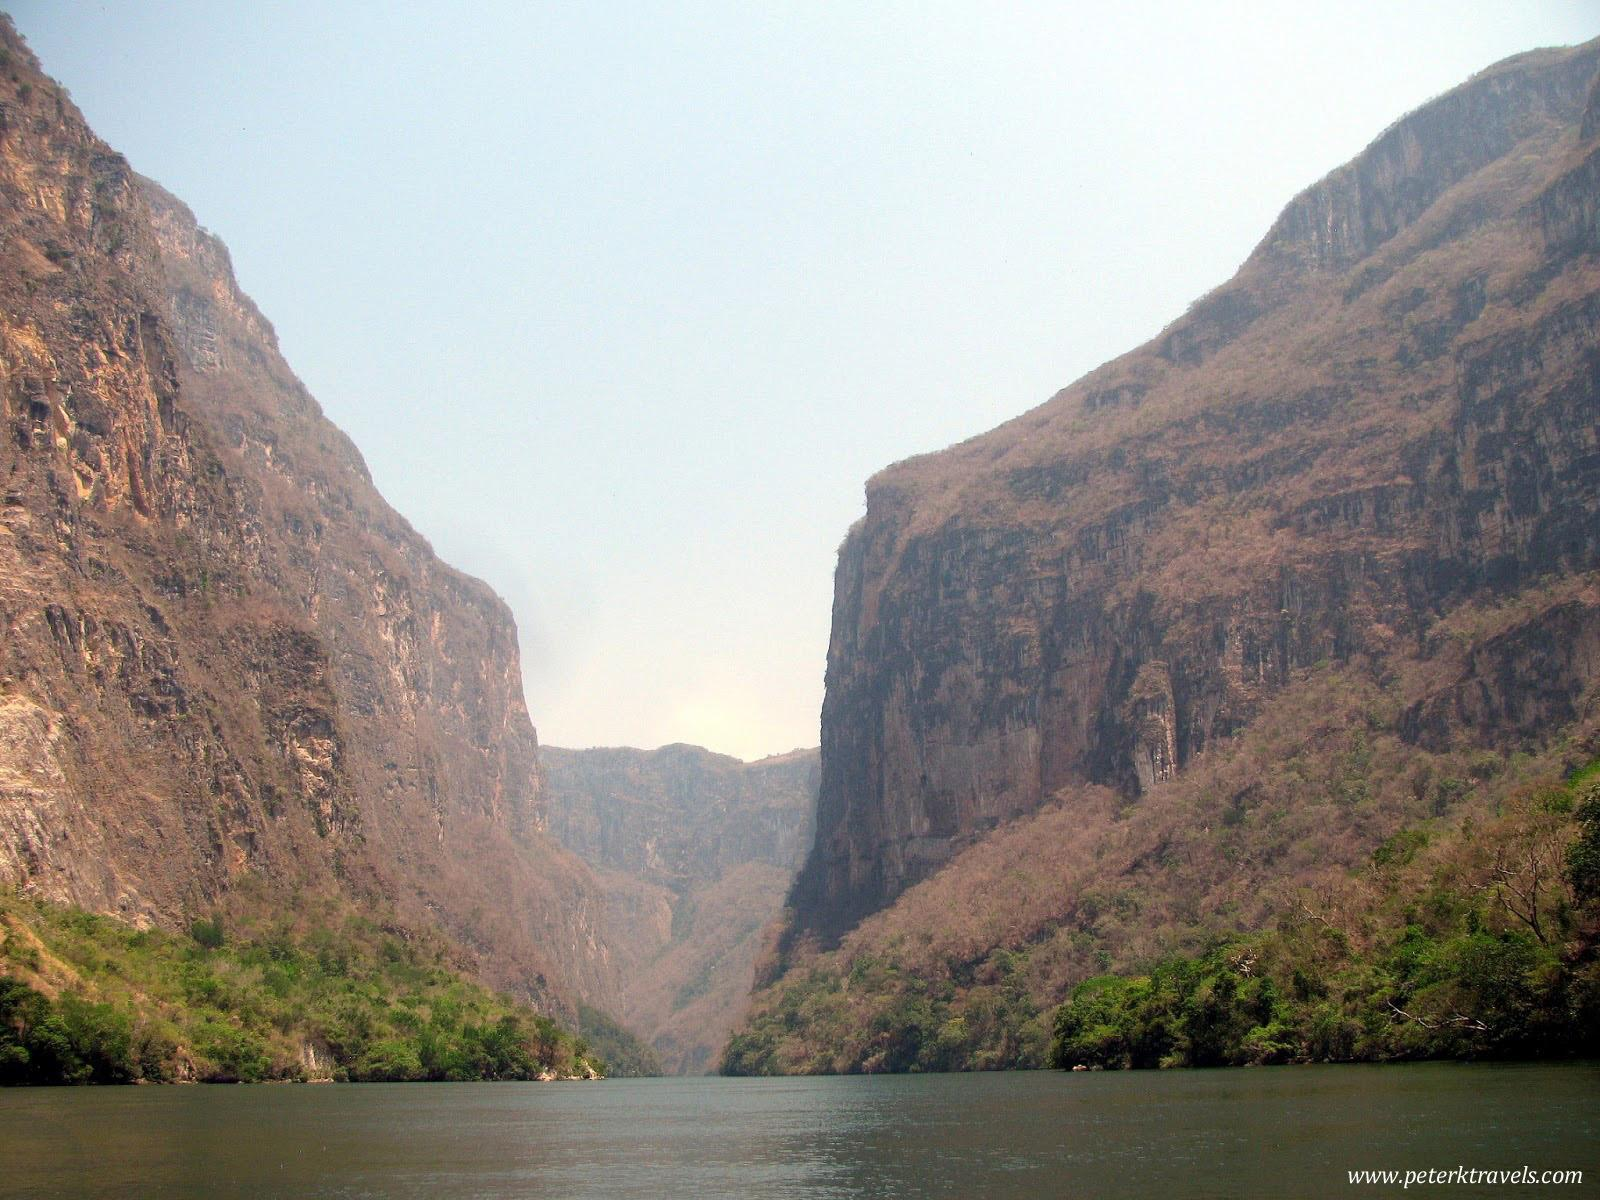 Sumidero Canyon – Peter's Travel Blog